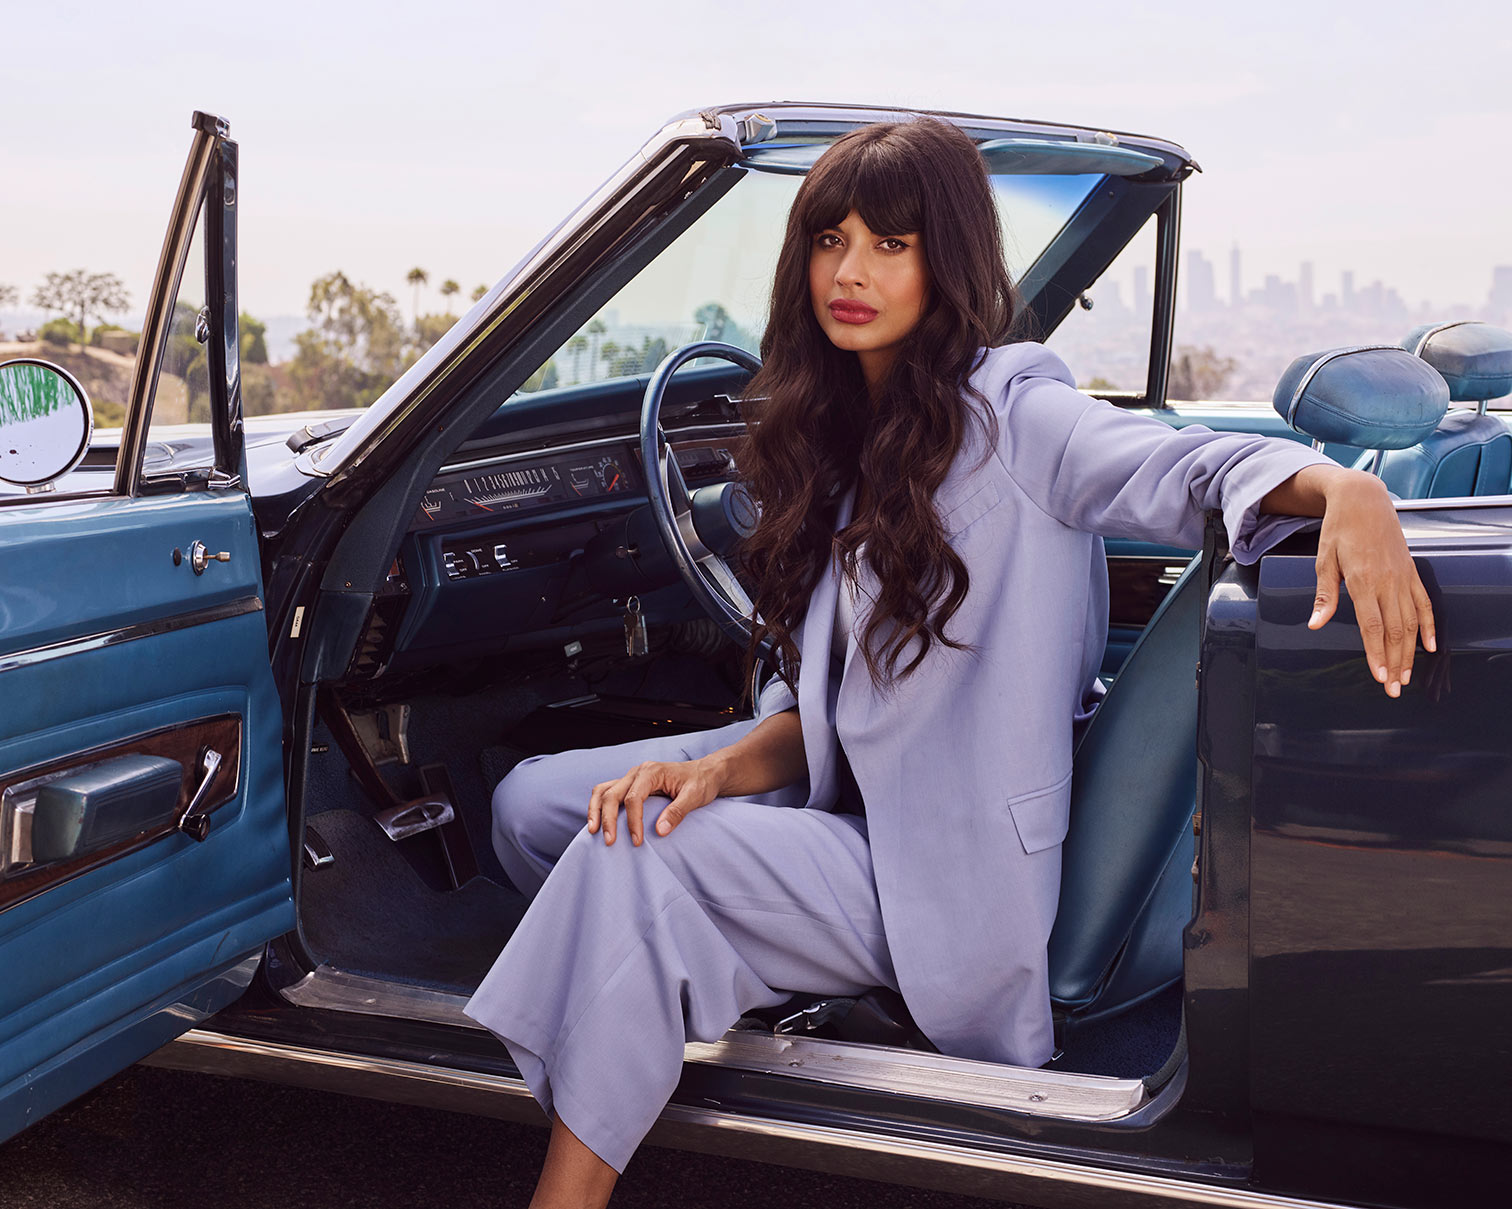 Bumble_Loneliness_Jameela_car2web